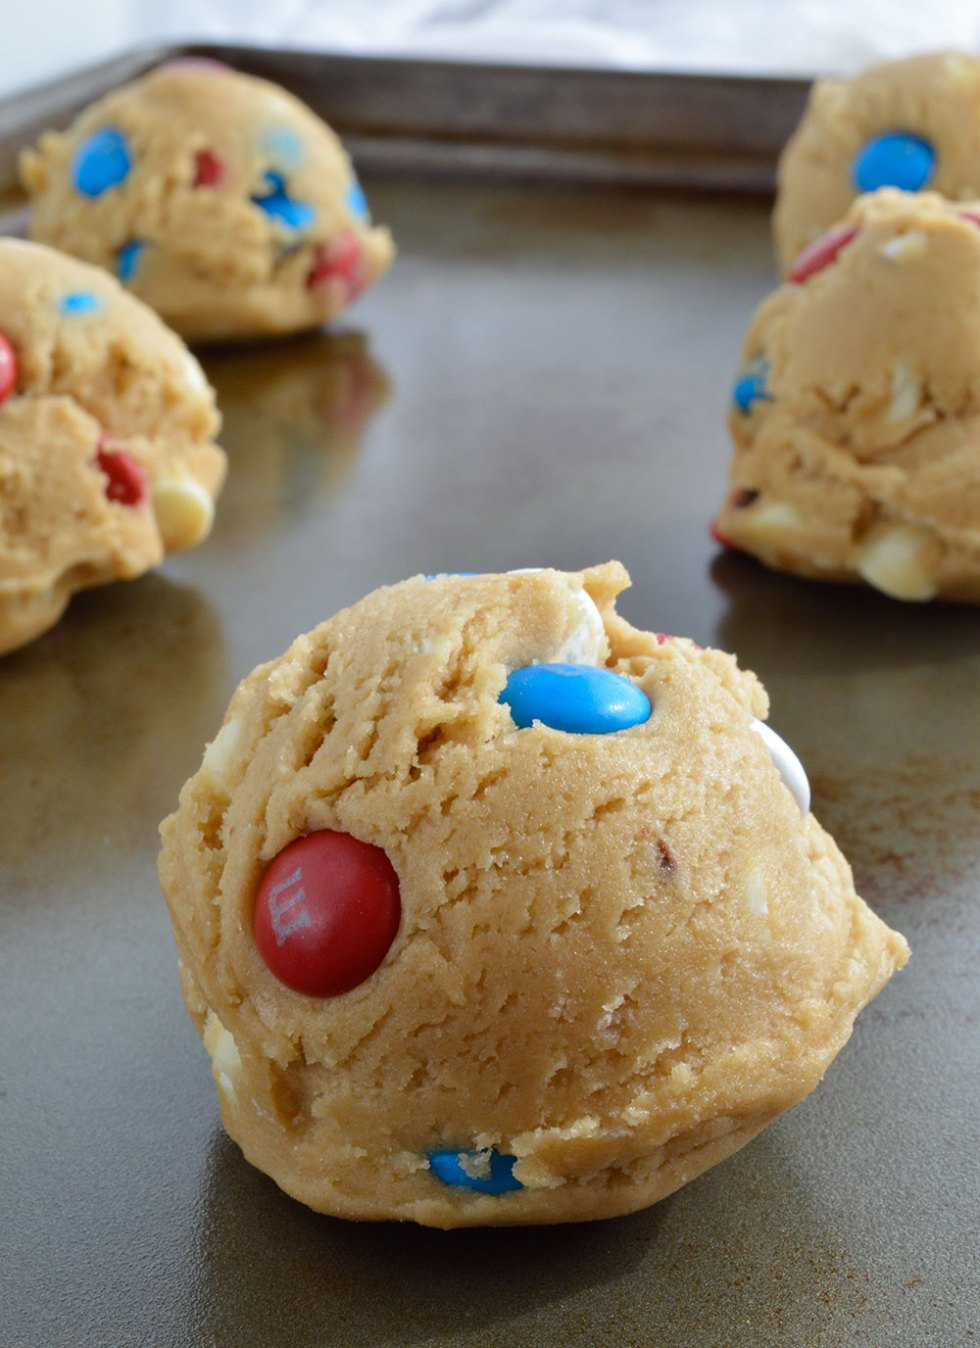 Soft Chocolate Chip Cookies Recipe with M&M's and white chocolate chips. These soft batch cookies are moist, chewy and loaded with Red White and Blue M&M's!